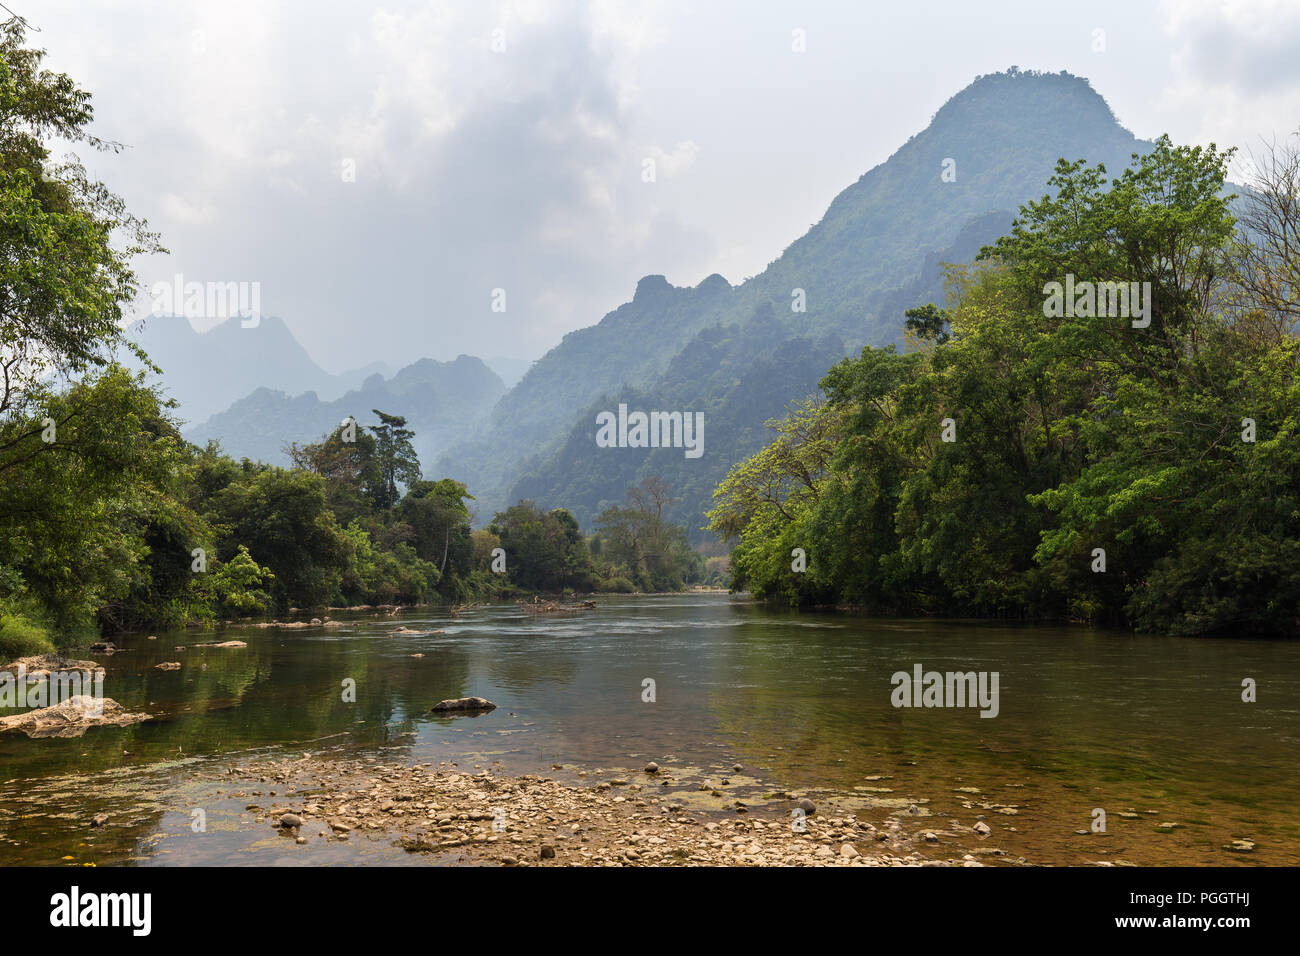 Scenic view of Nam Song River and limestone mountains near Vang Vieng, Vientiane Province, Laos. Stock Photo